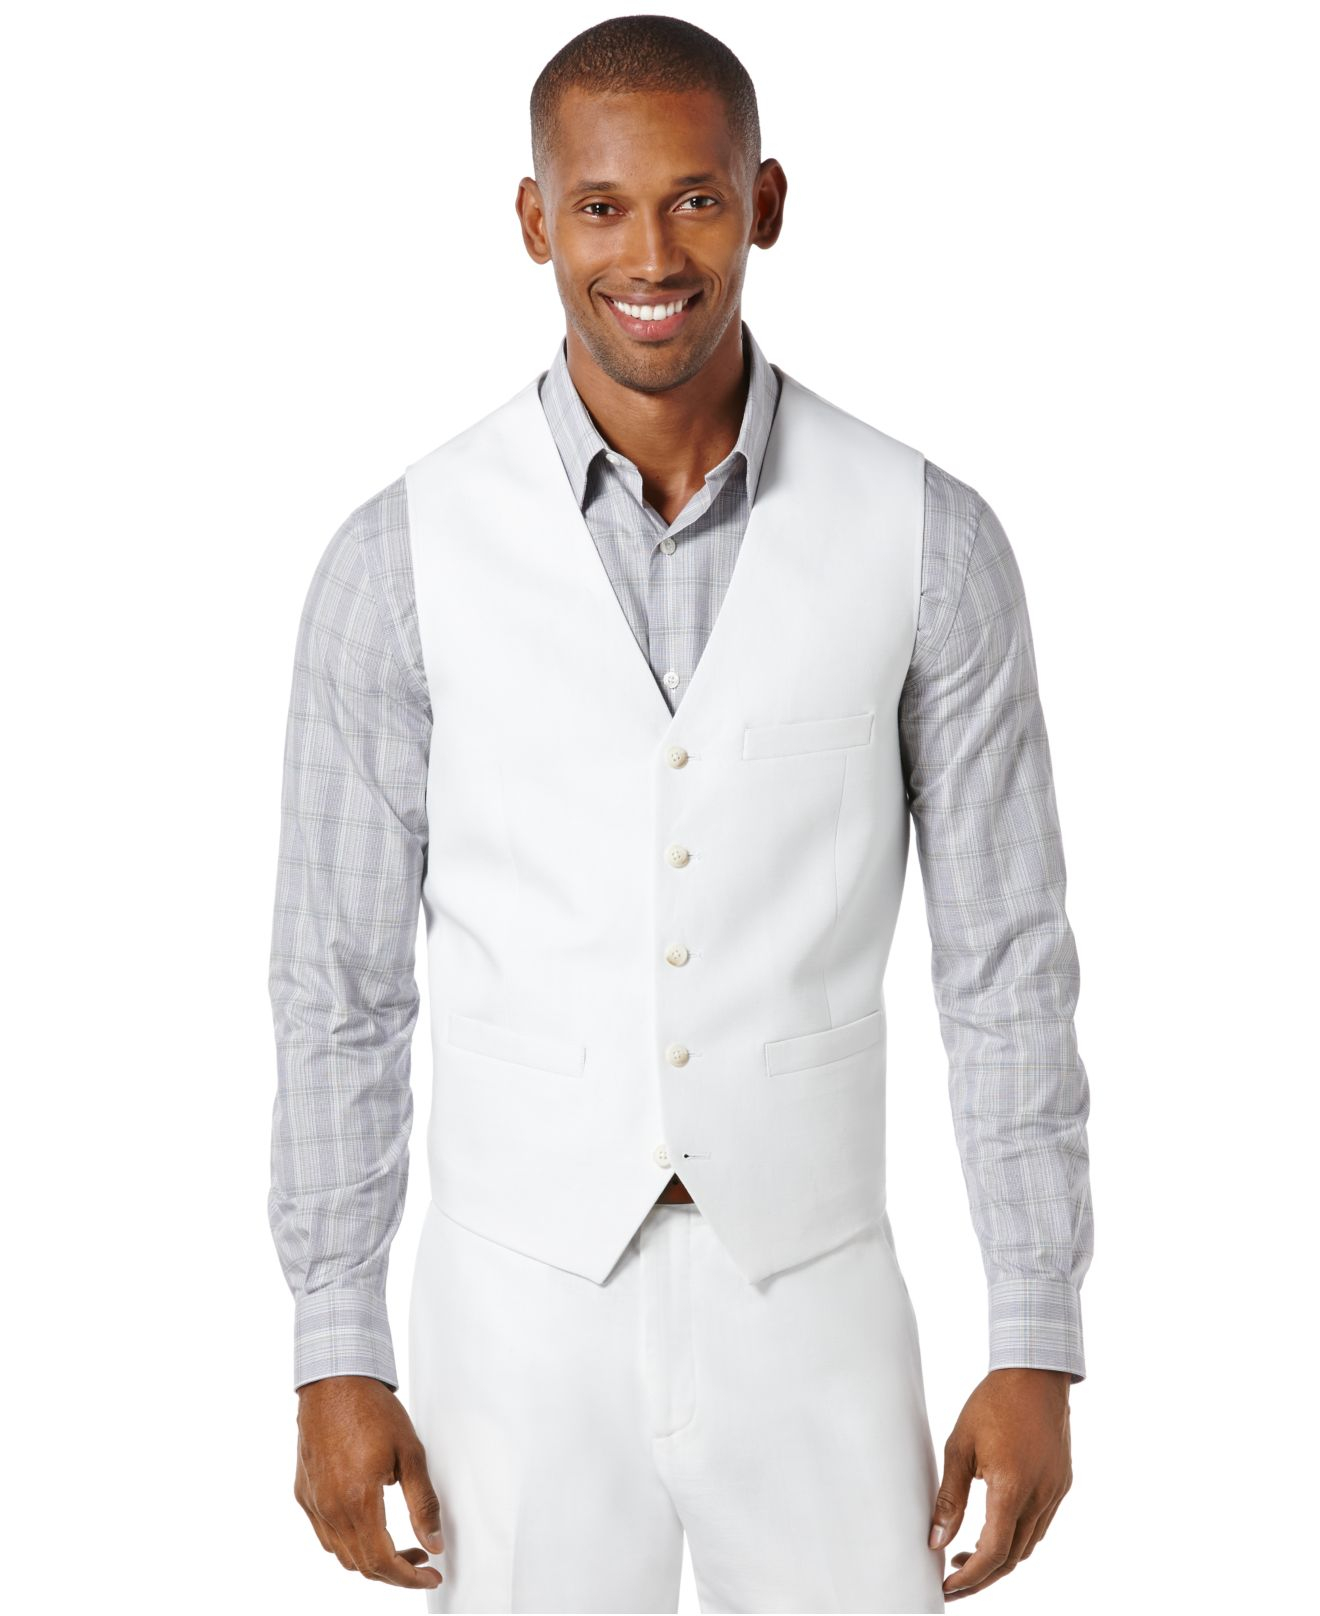 Men's Linen Clothes: Linen Shirts, Linen Pants, Linen Suits There's a reason clothes have been created with linen for more than 4, years. Linen clothing is .